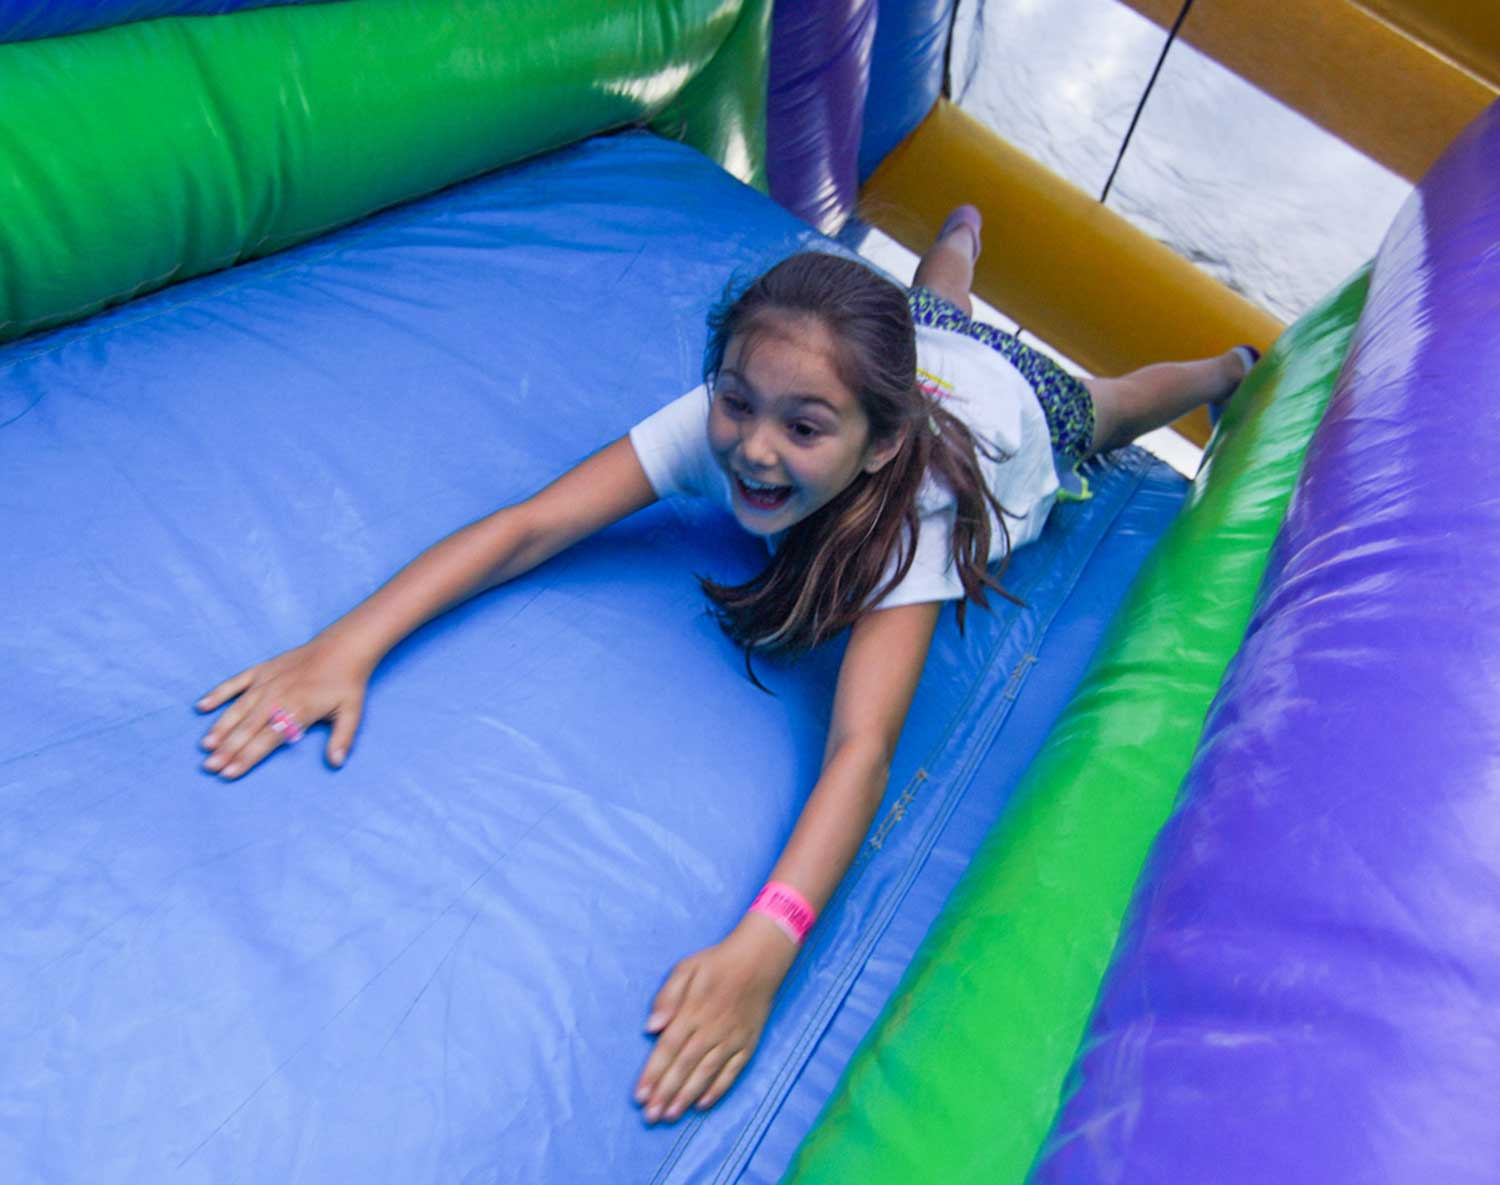 inflatable-activities-kids-fun